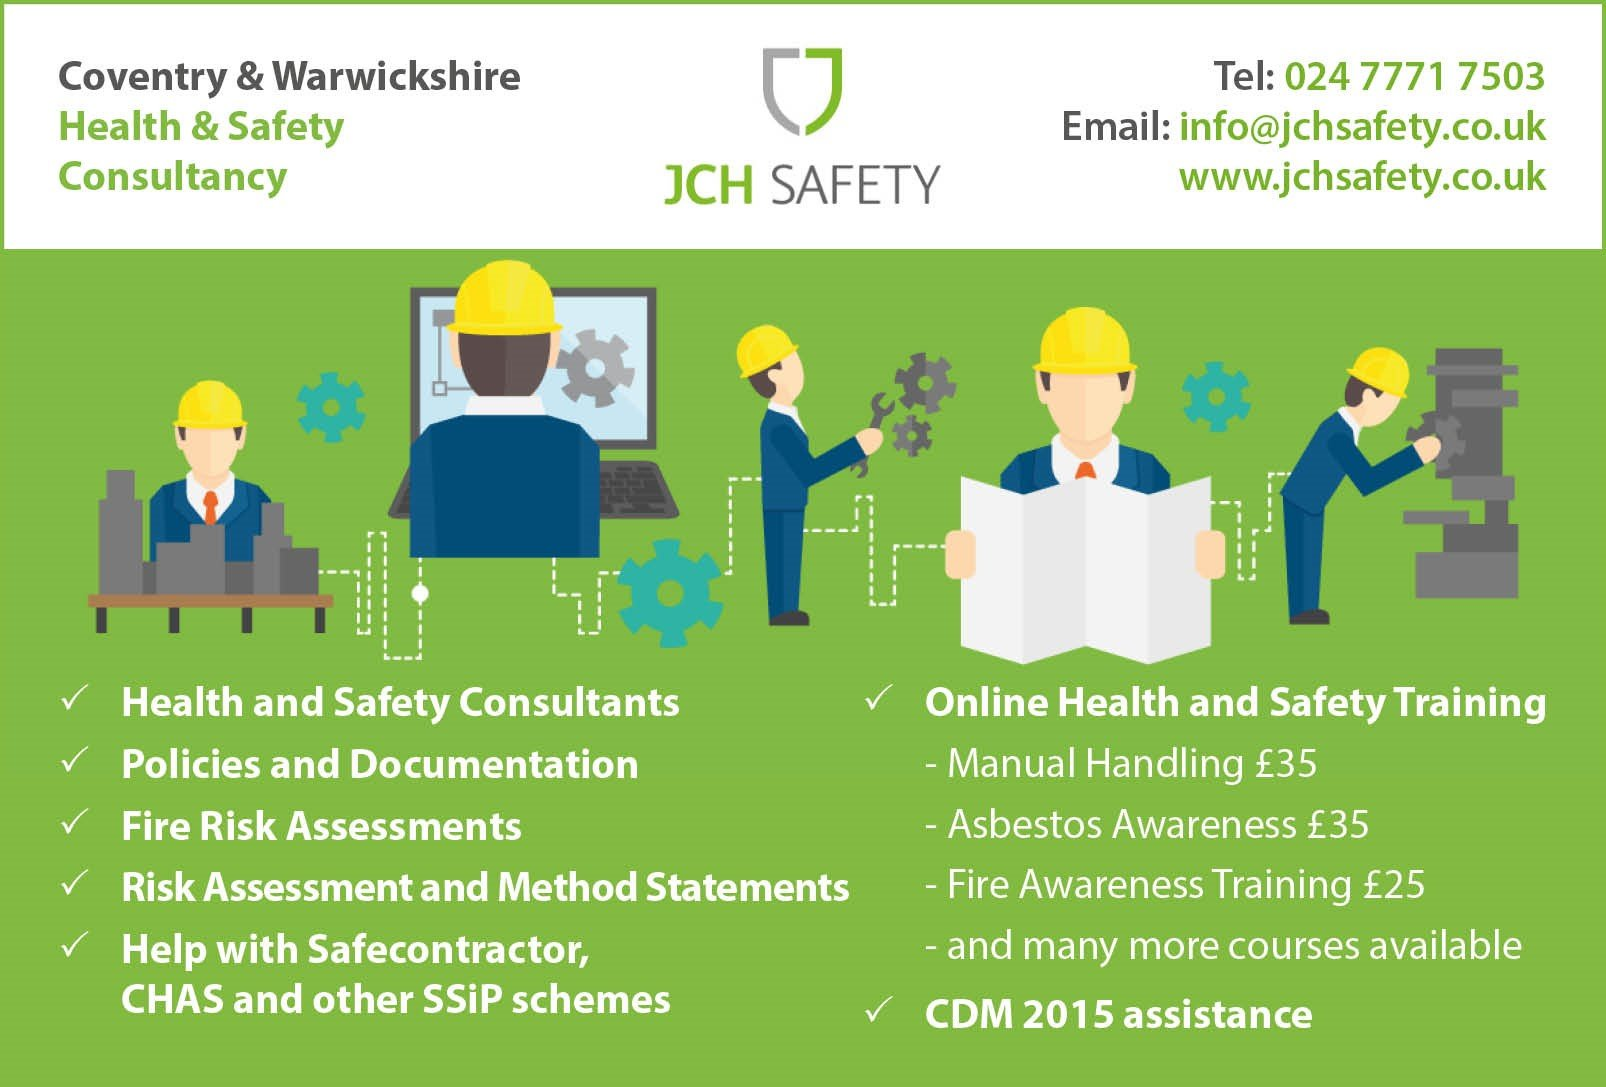 Coventry & Warwickshire Health and Safety Consultancy